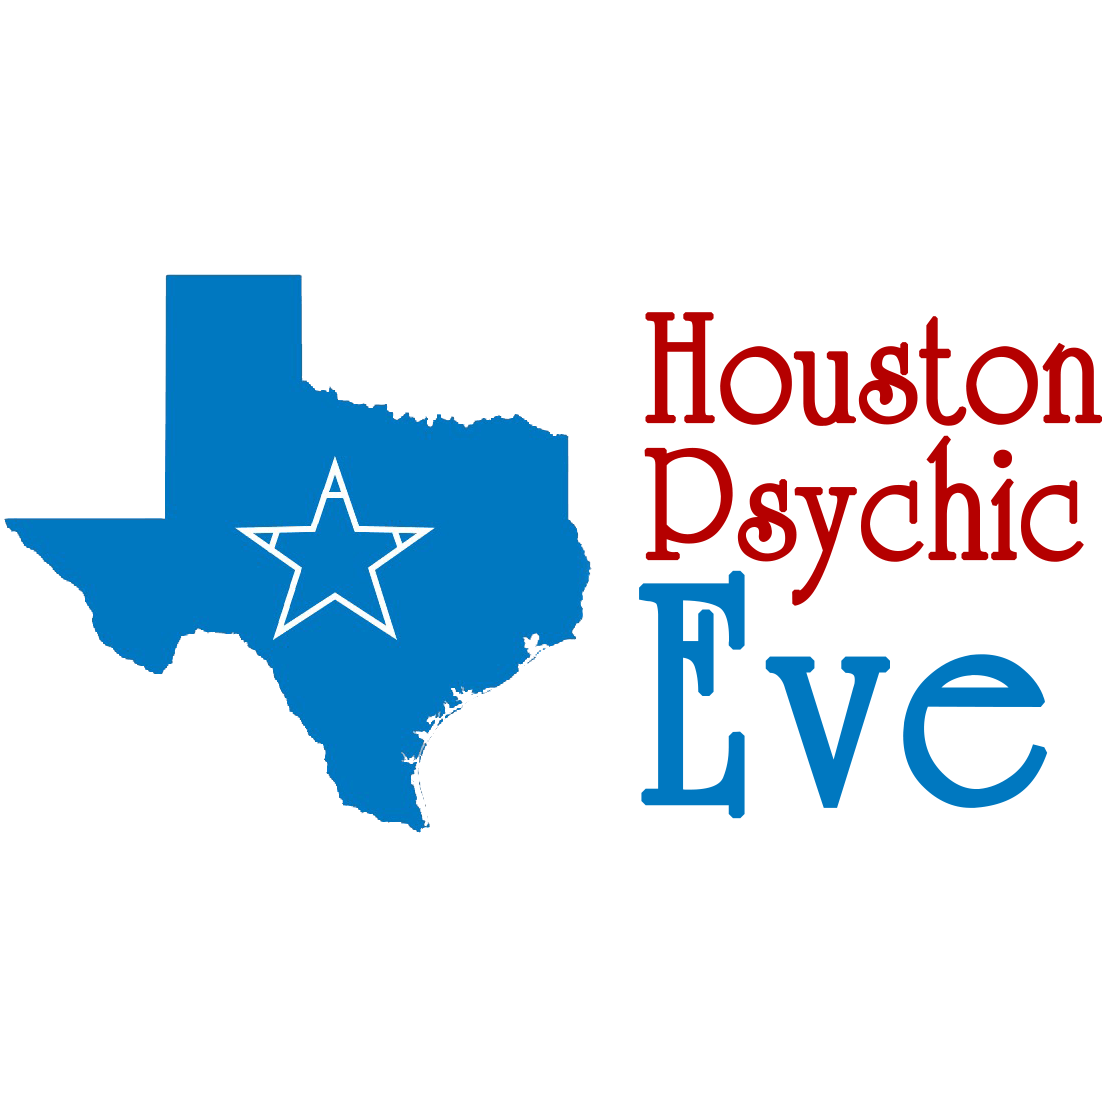 Houston Texas Psychic Eve image 5